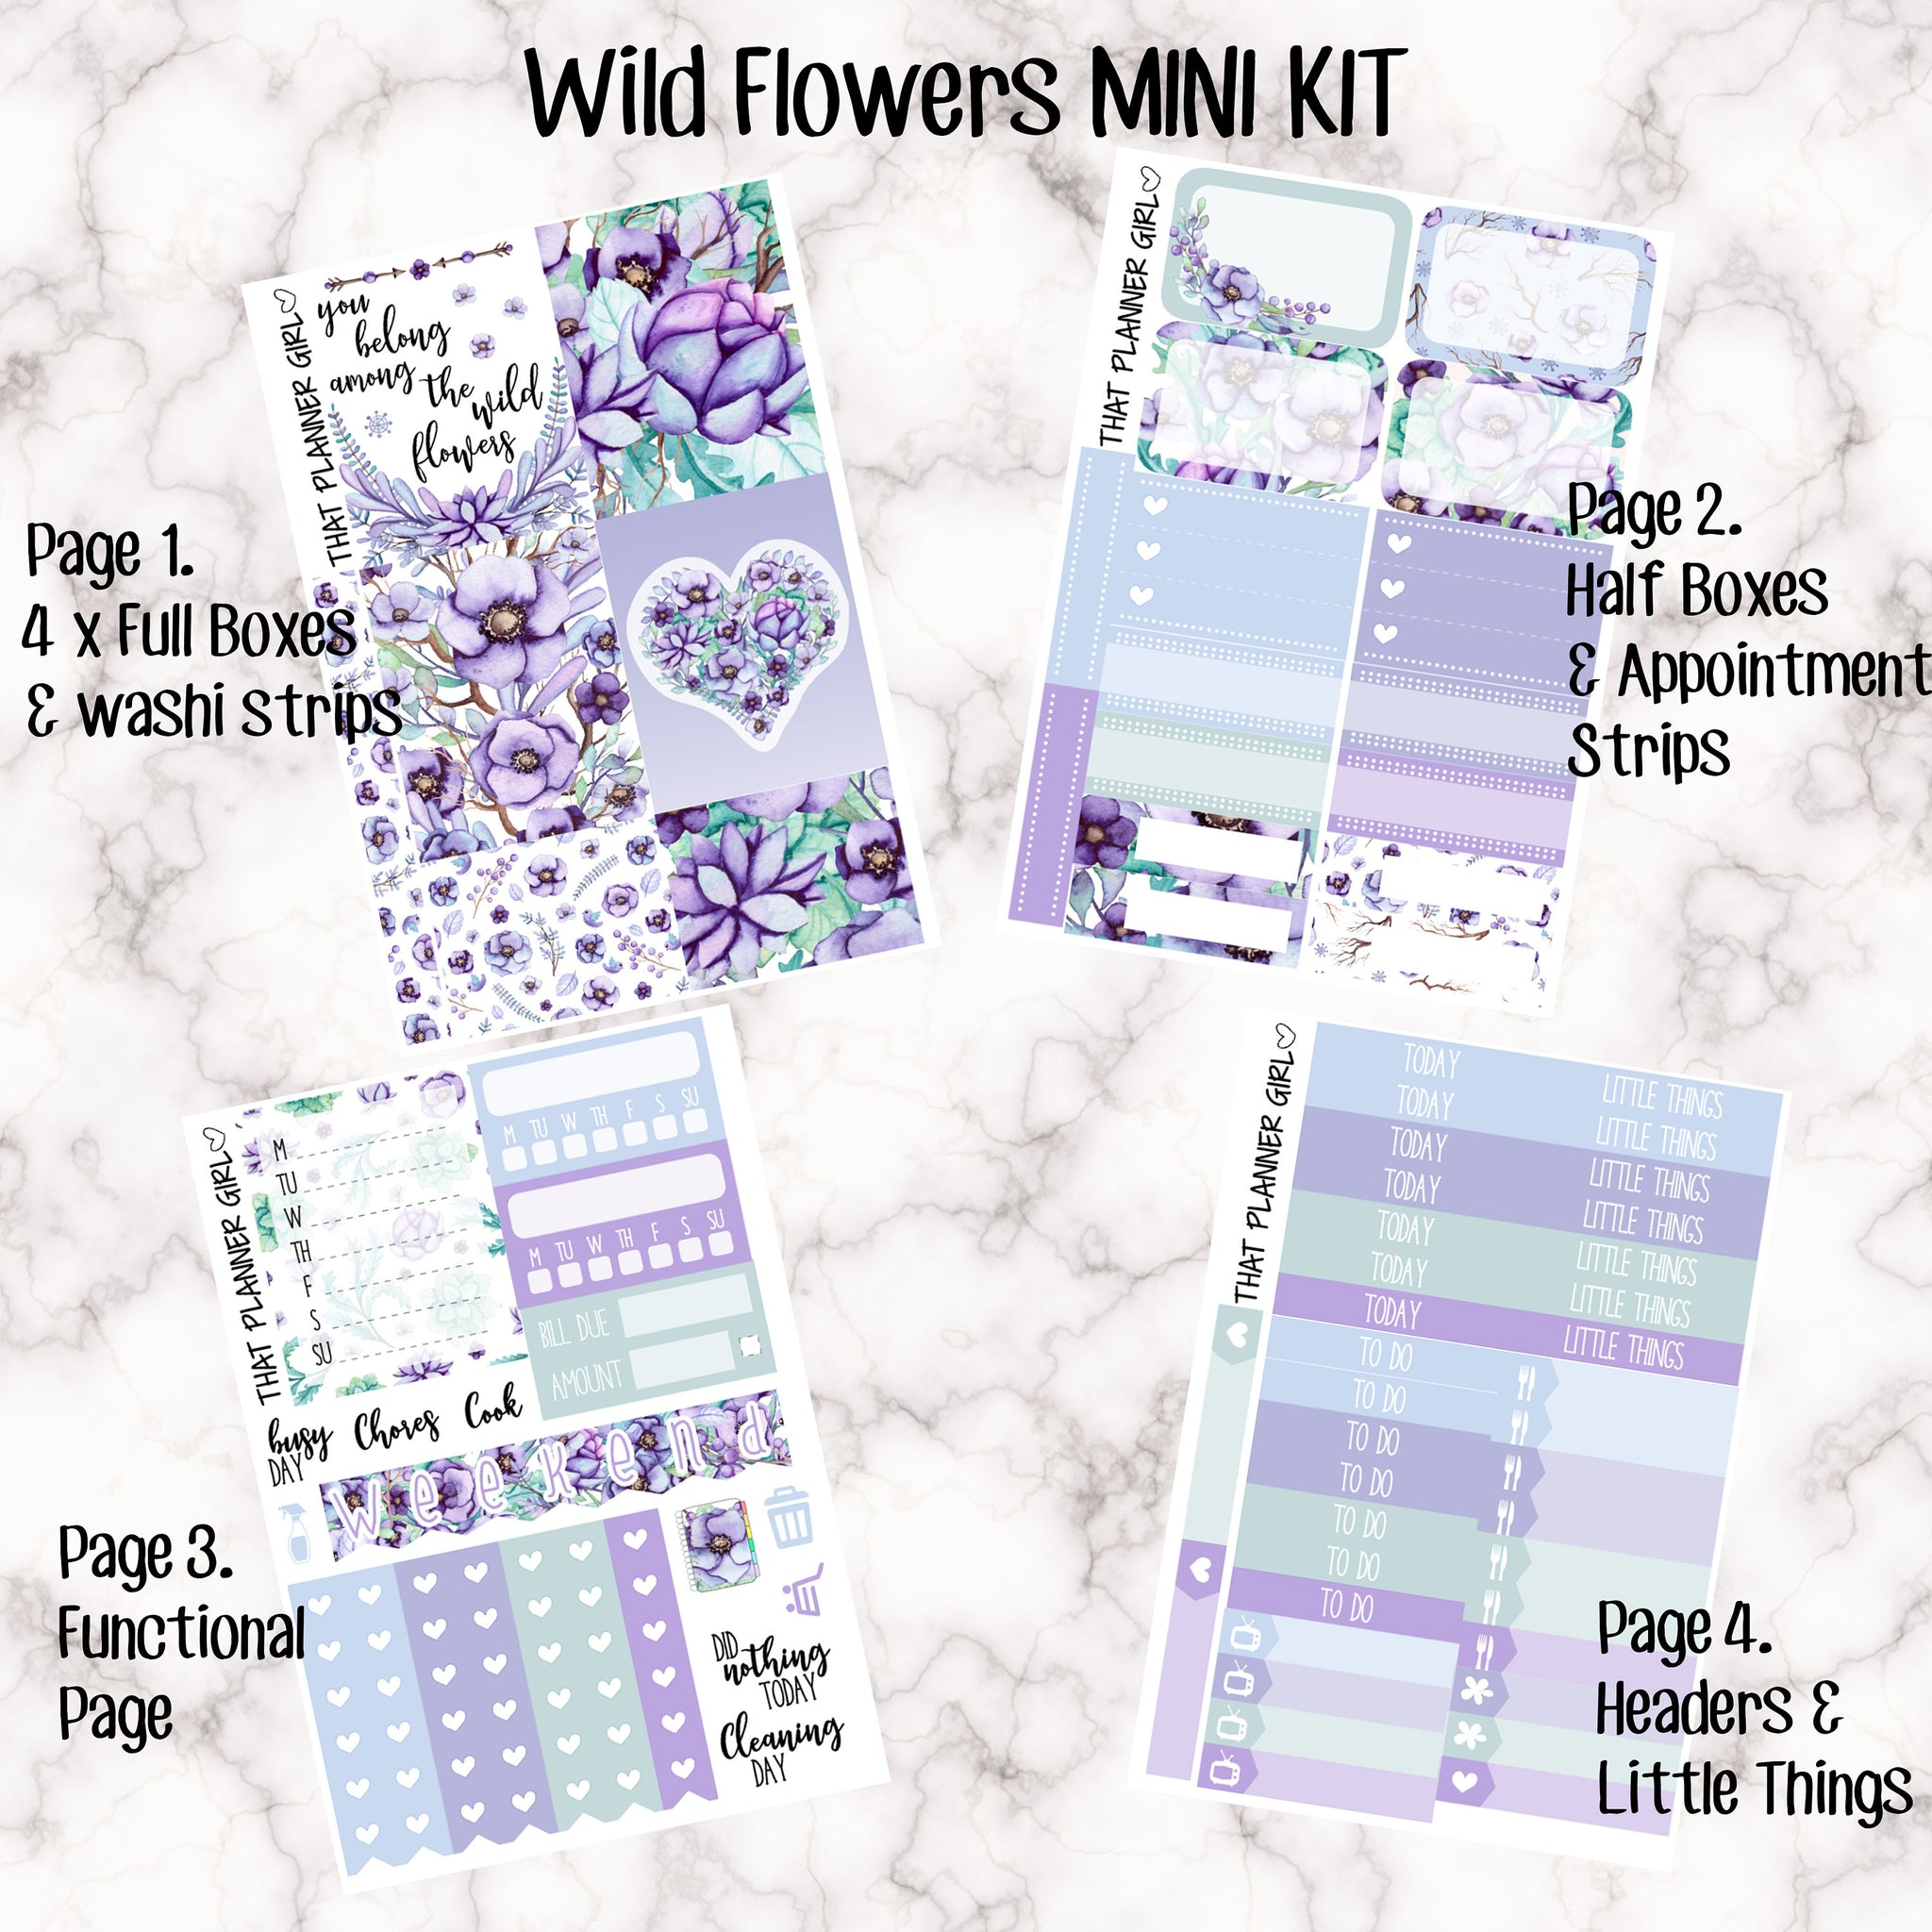 Wild Flowers Mini Kit - Sheets available individually or as a full kit!! - Small Kit for White Space Planning!